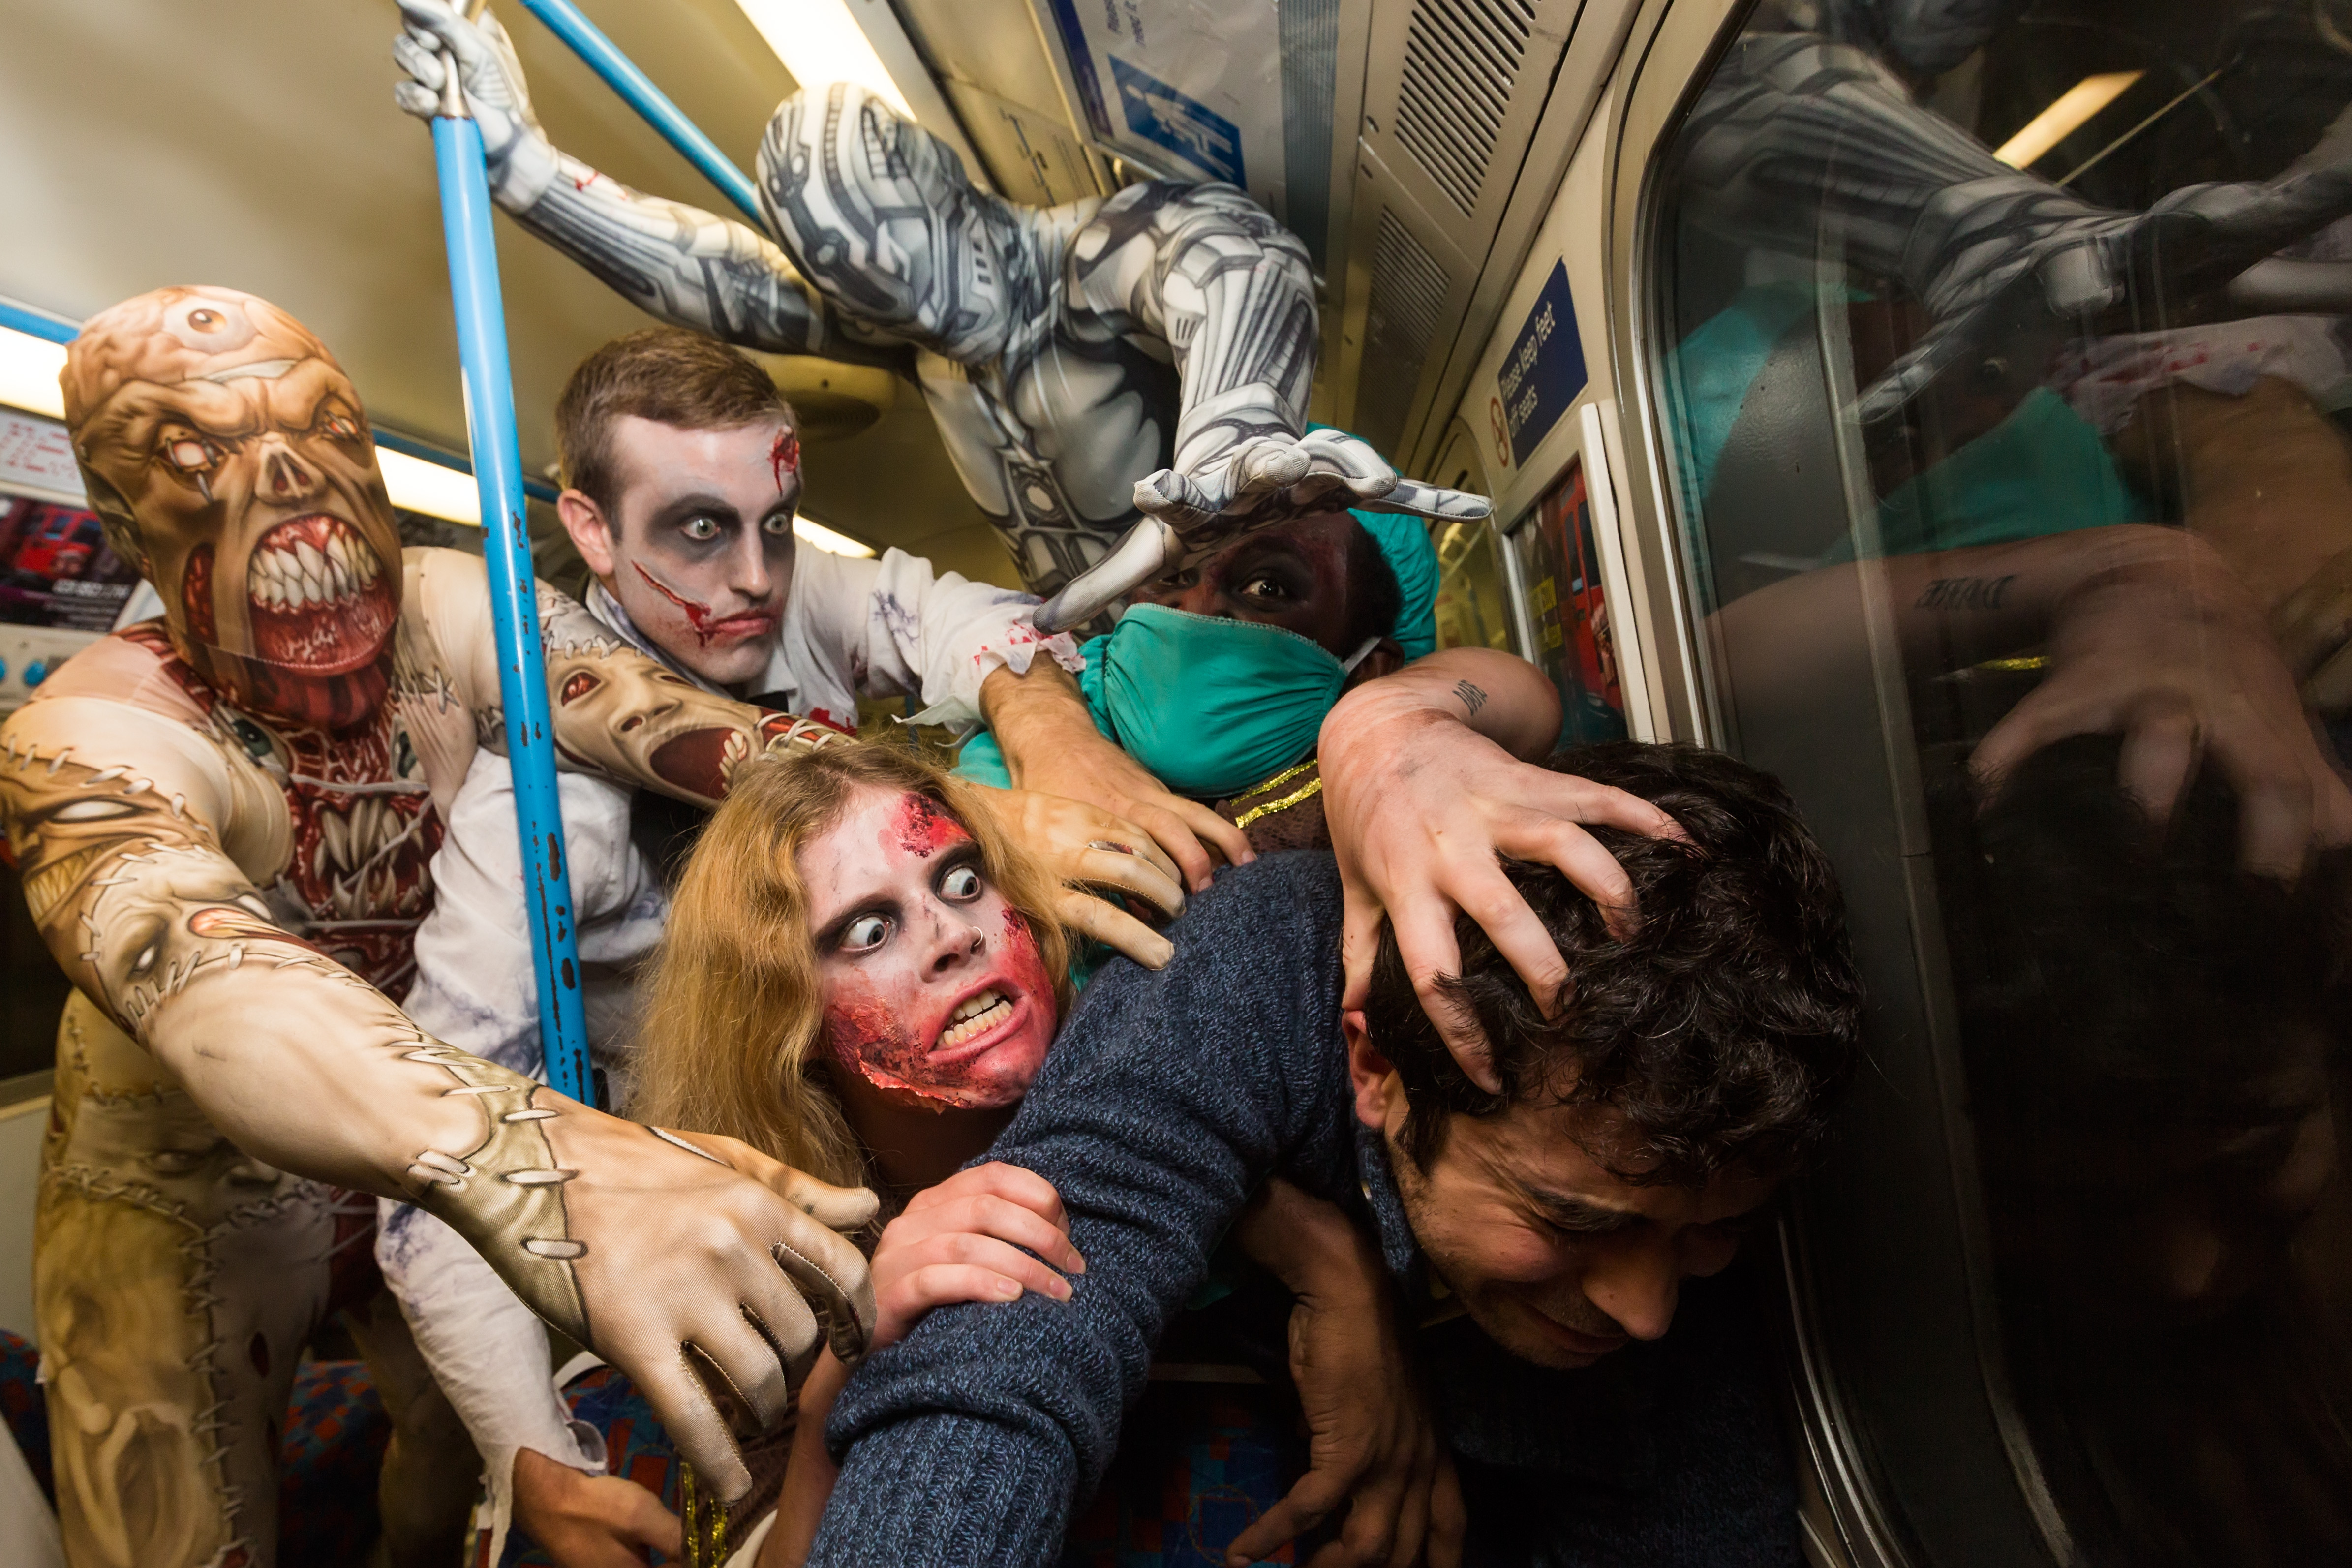 Where will the Fright Mob strike next?